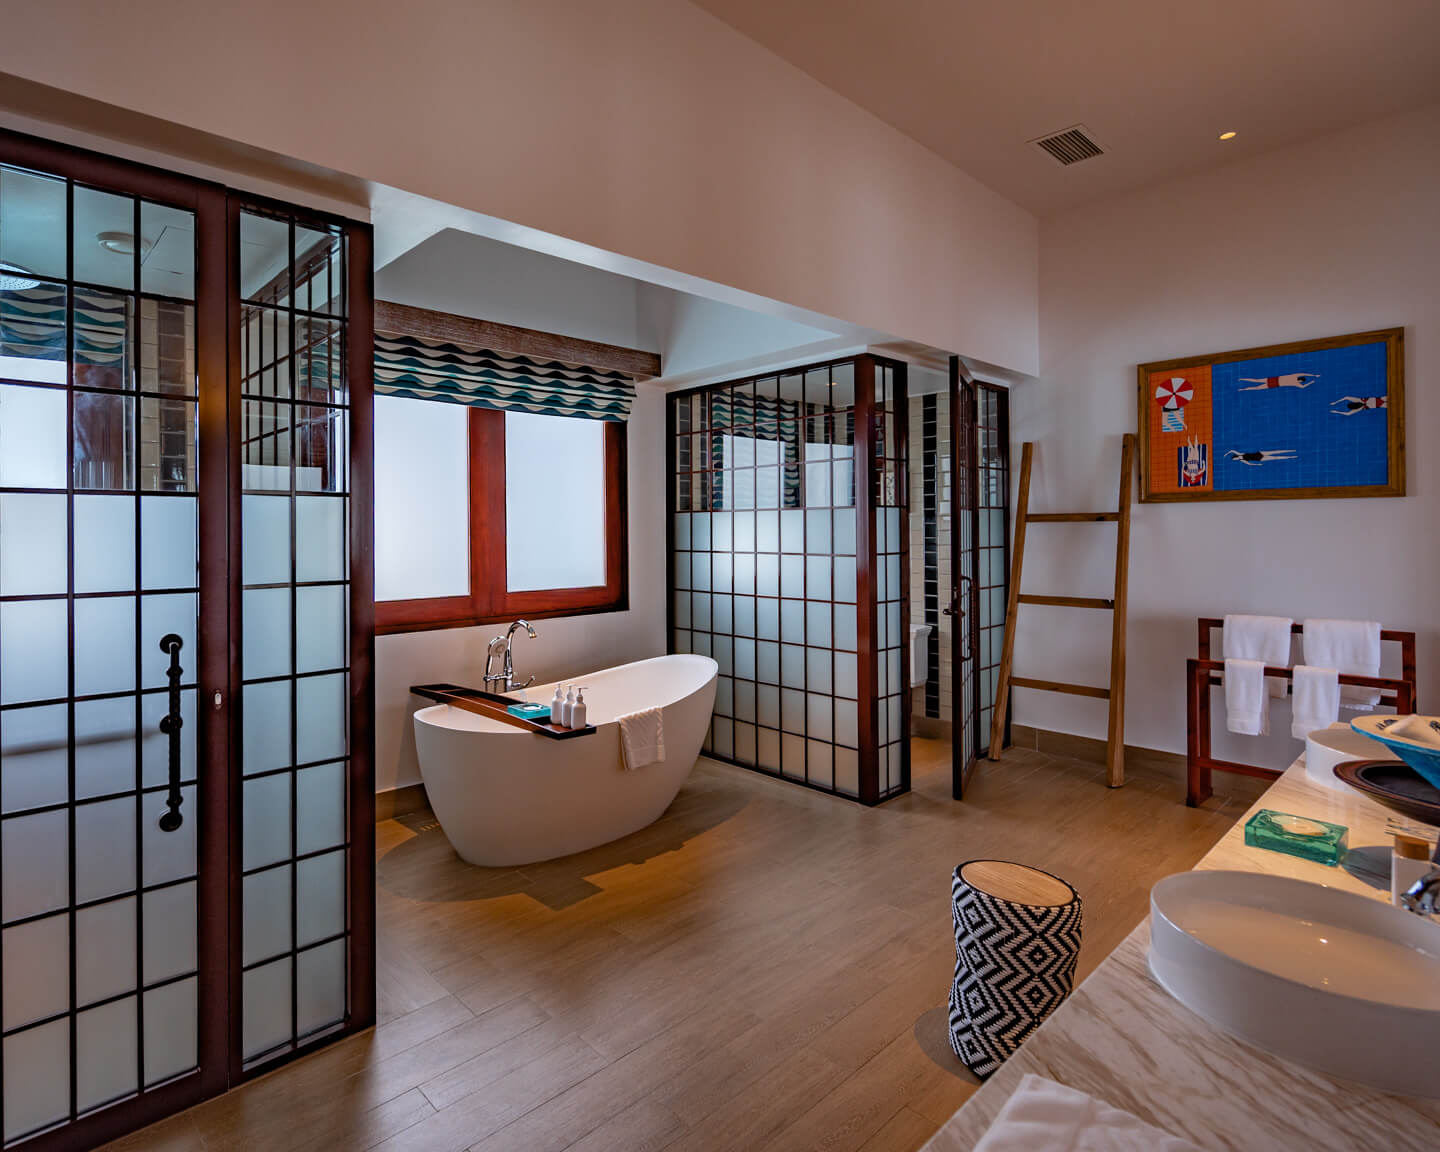 huge bathroom with bathtub and two sinks of the 2-bedroom overwater villa of the SAii Lagoon Maldives hotel